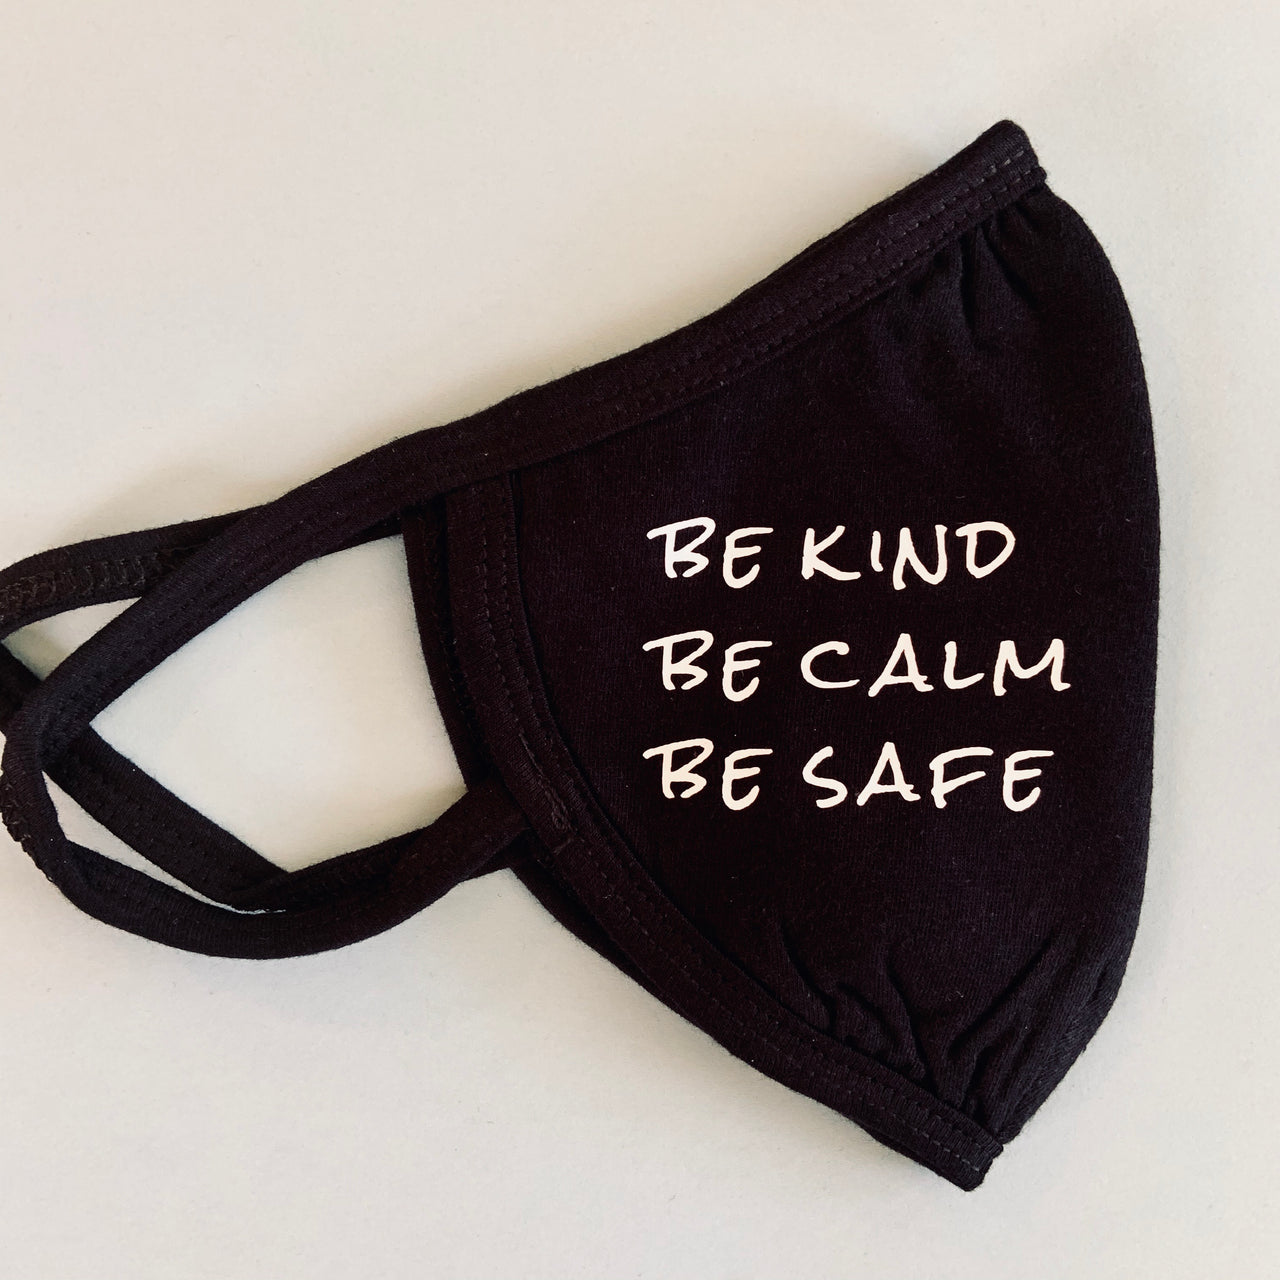 Be kind be calm be safe (Bonnie Henry) face mask